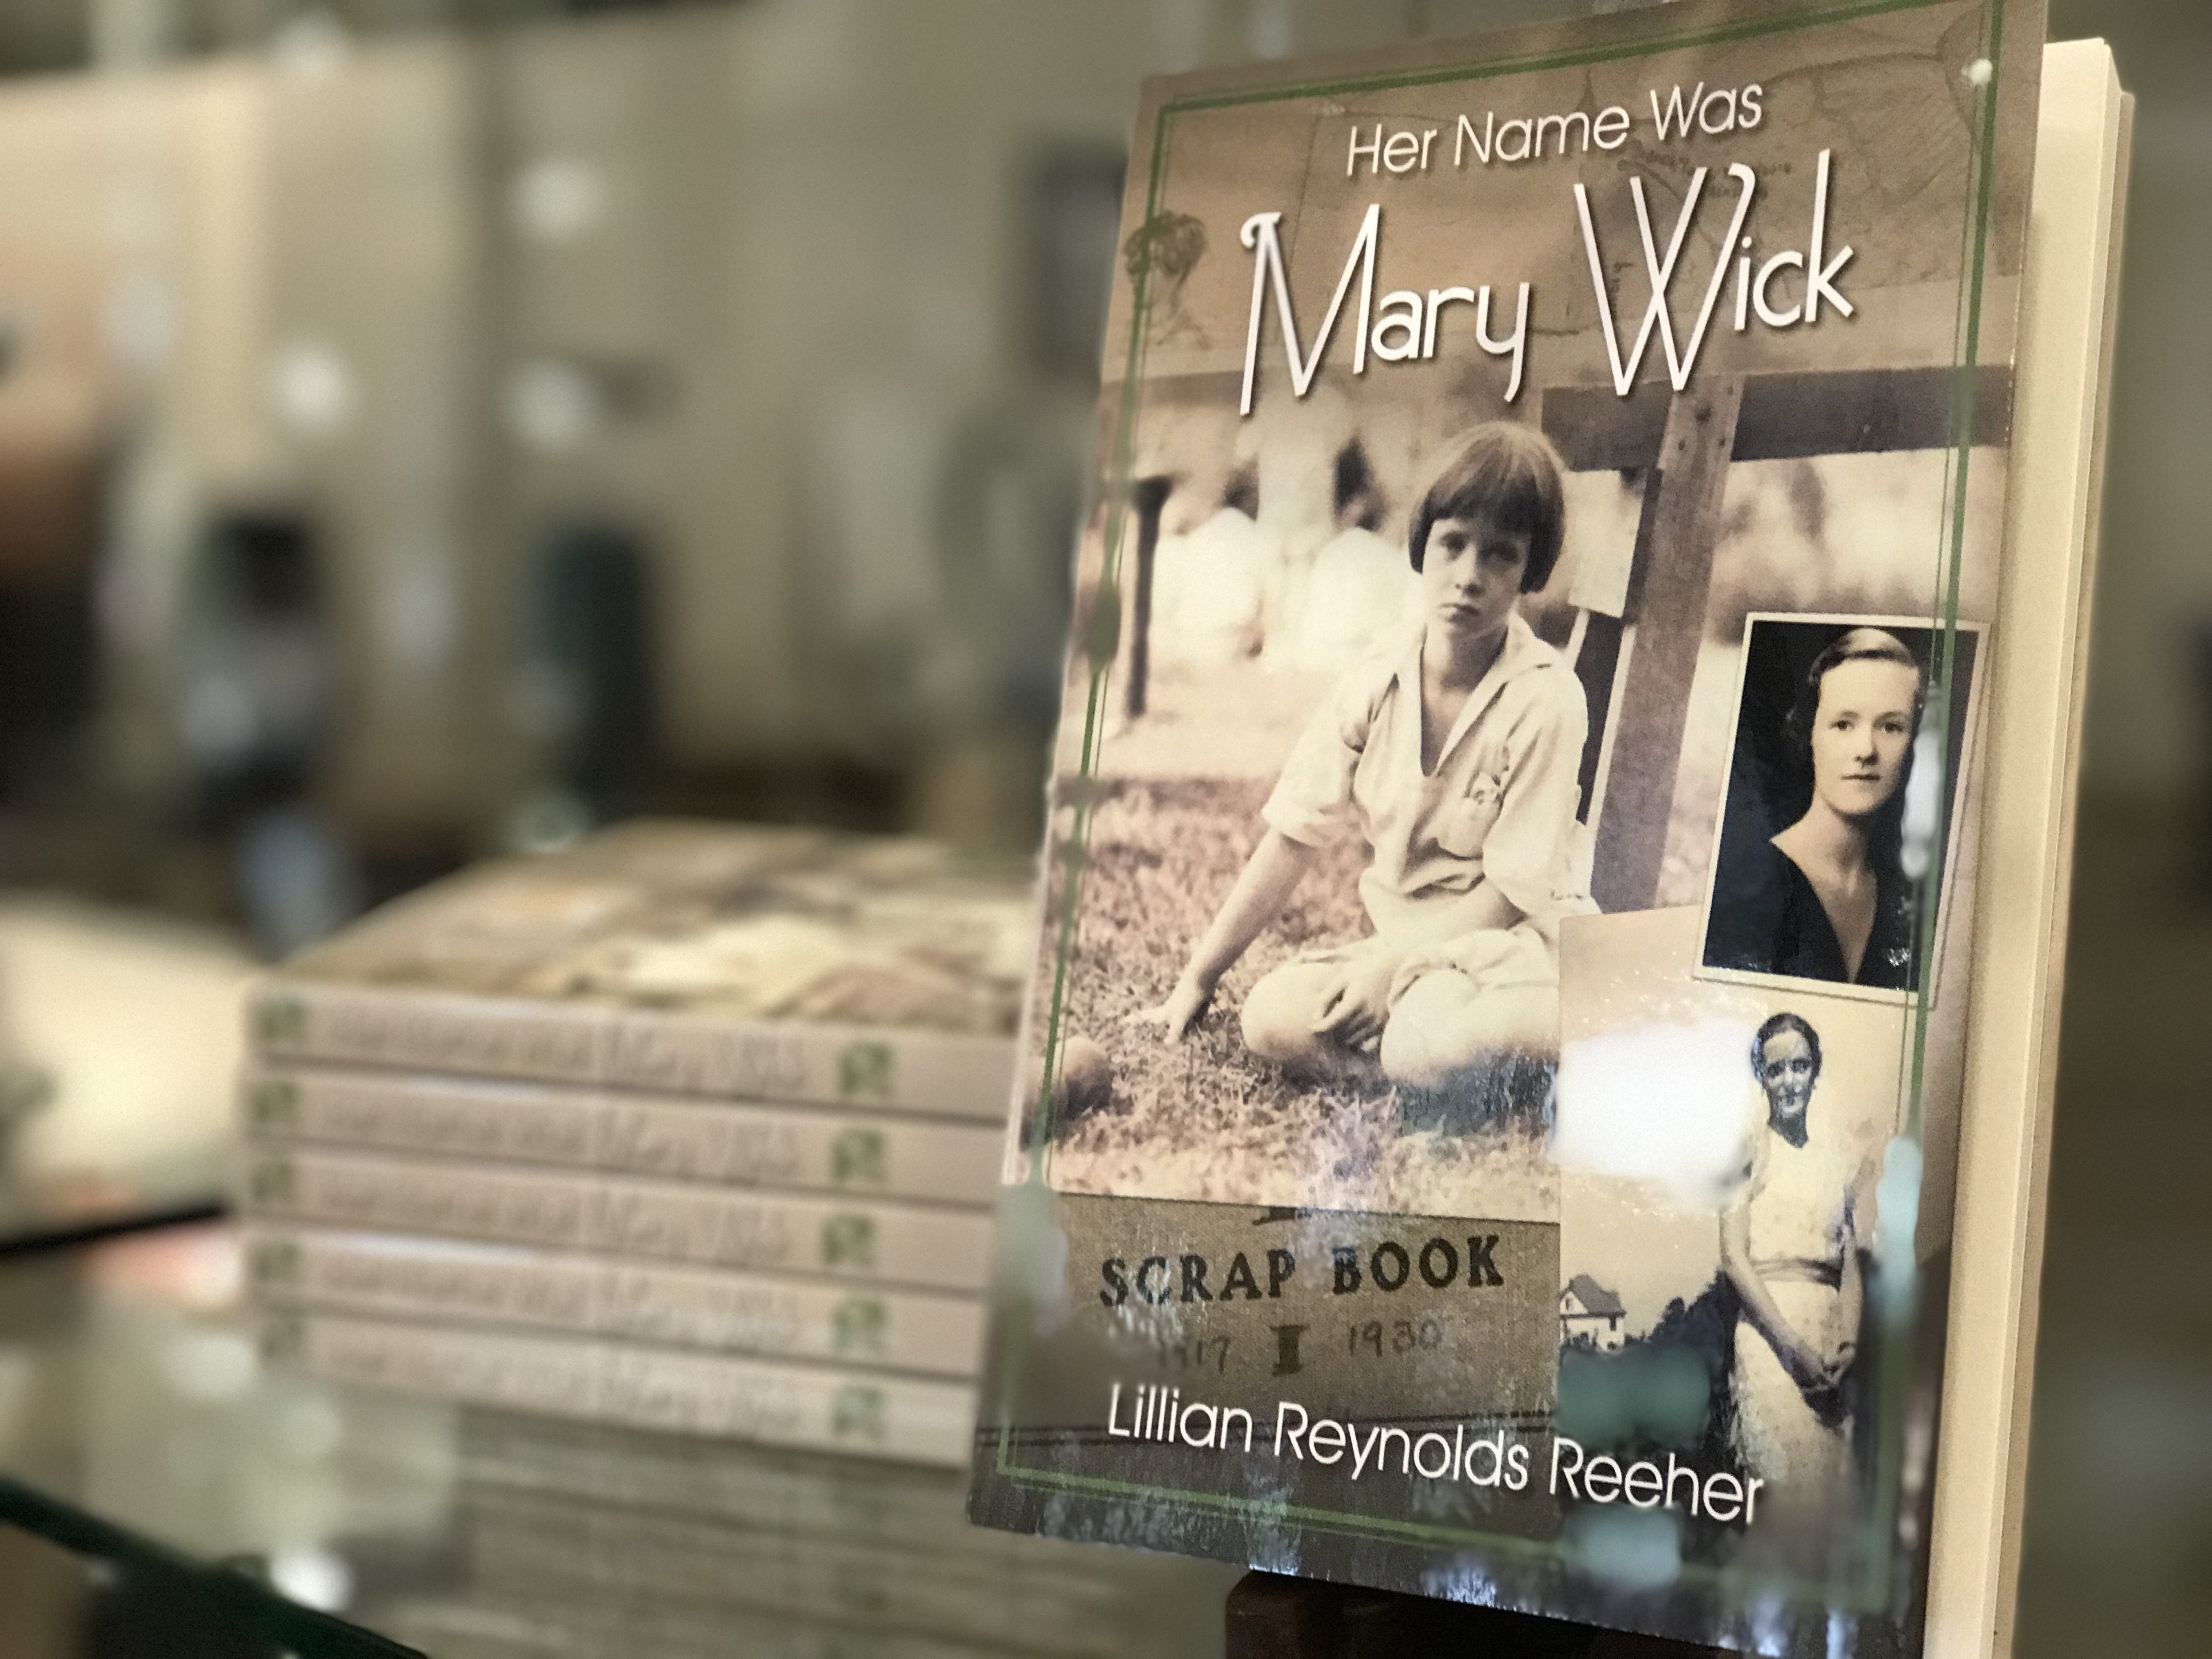 Bites & Bits of History – Her Name Was Mary Wick